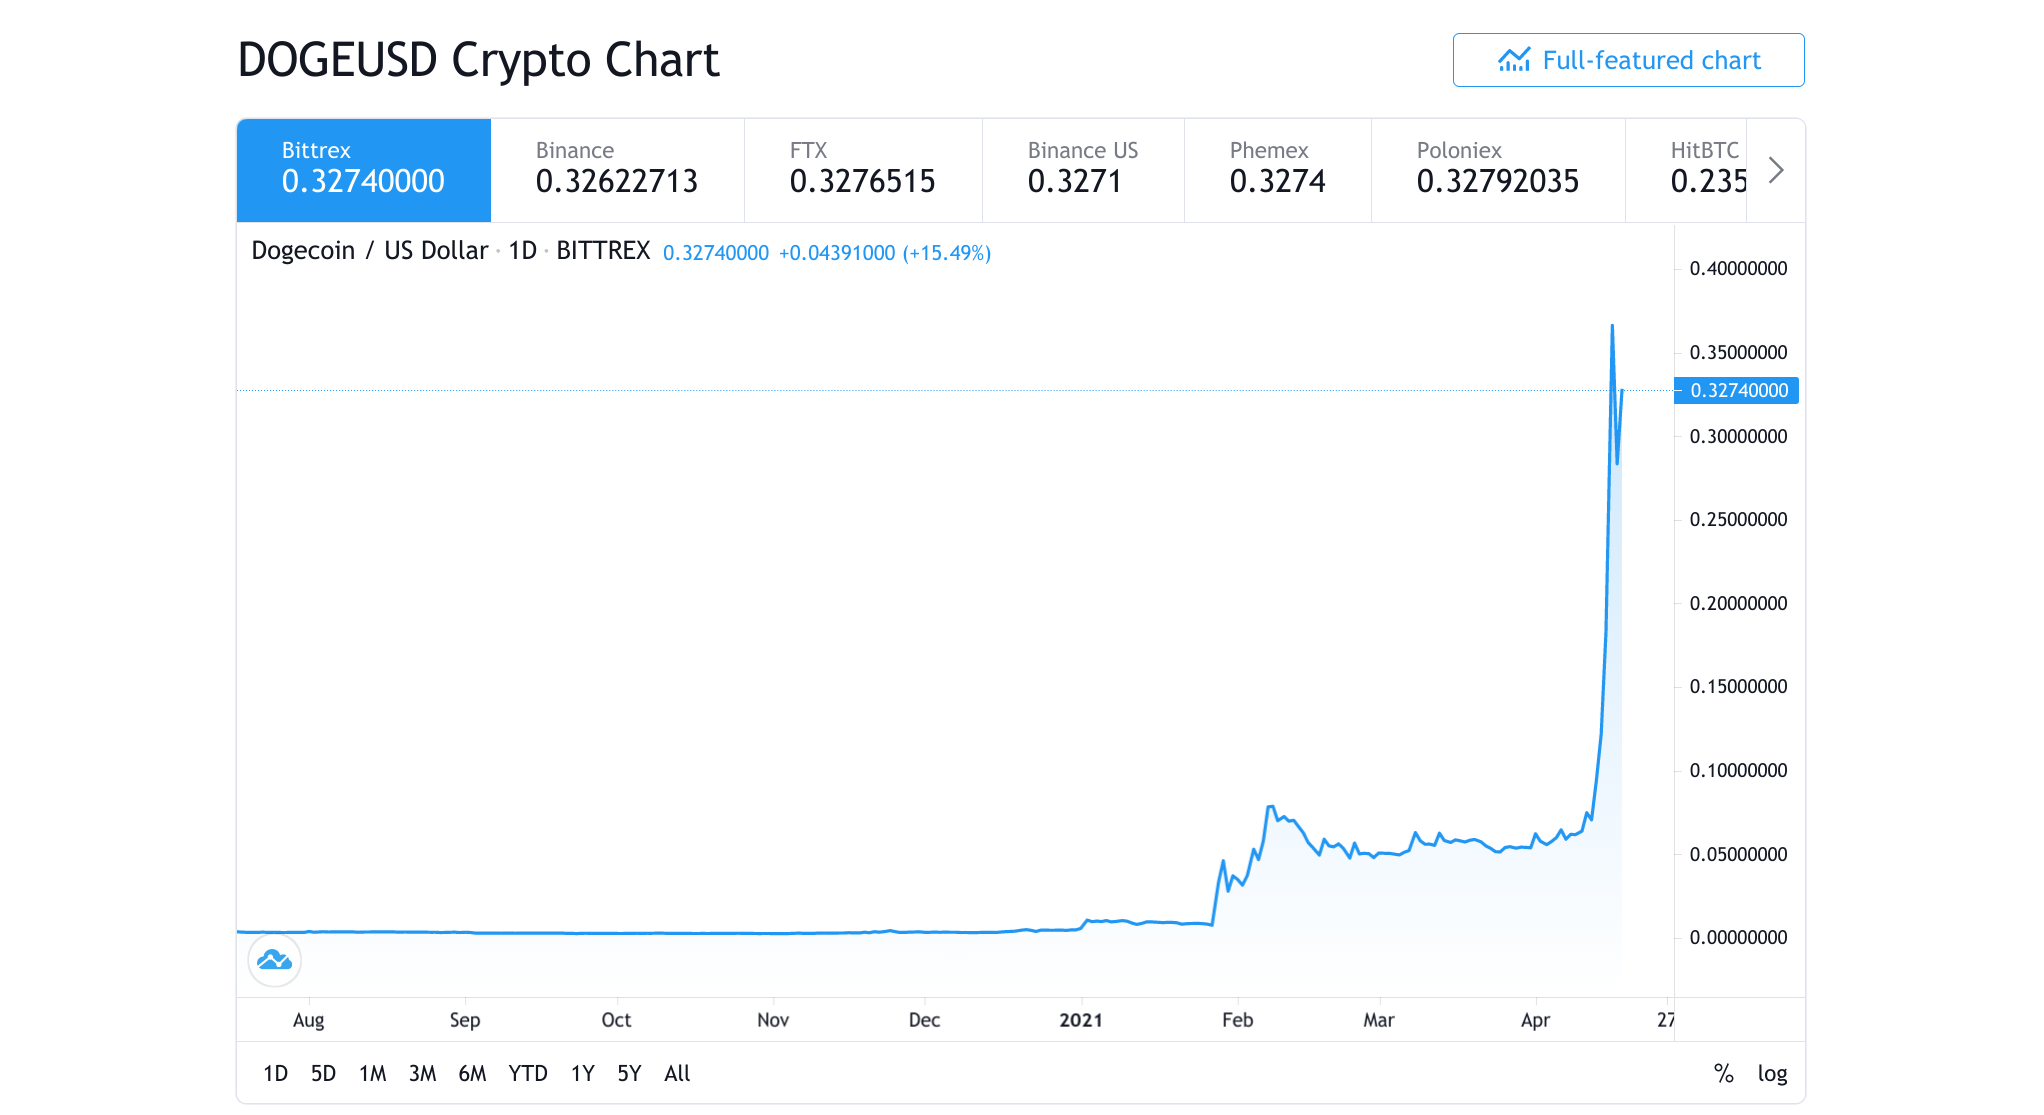 DOGE/USD chart showing the huge price boom of Dogecoin